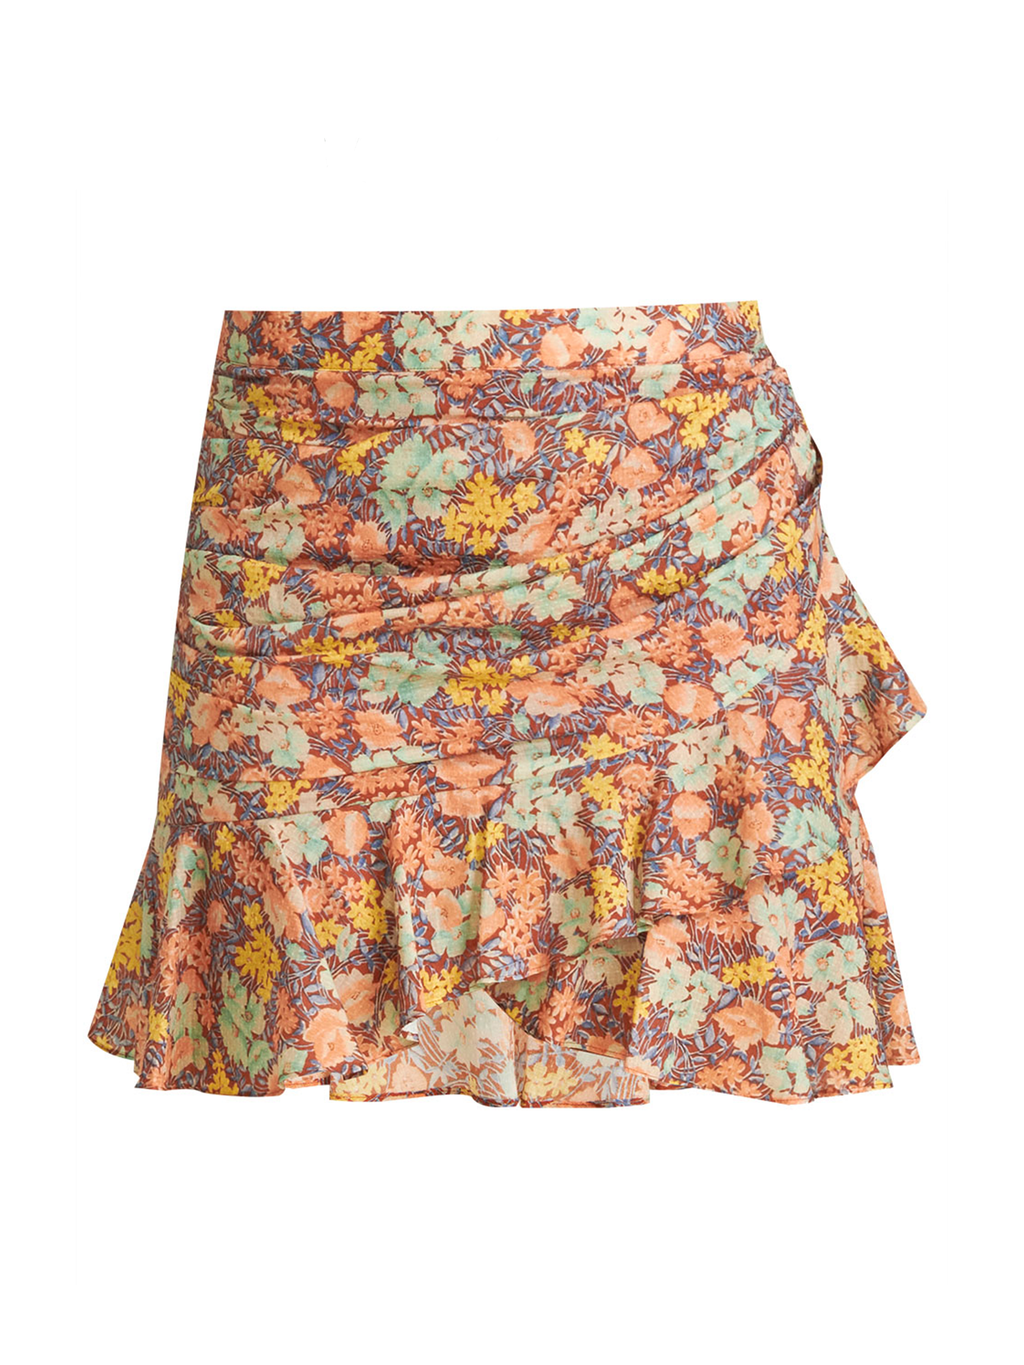 Veronica Beard Lyndsay Skirt